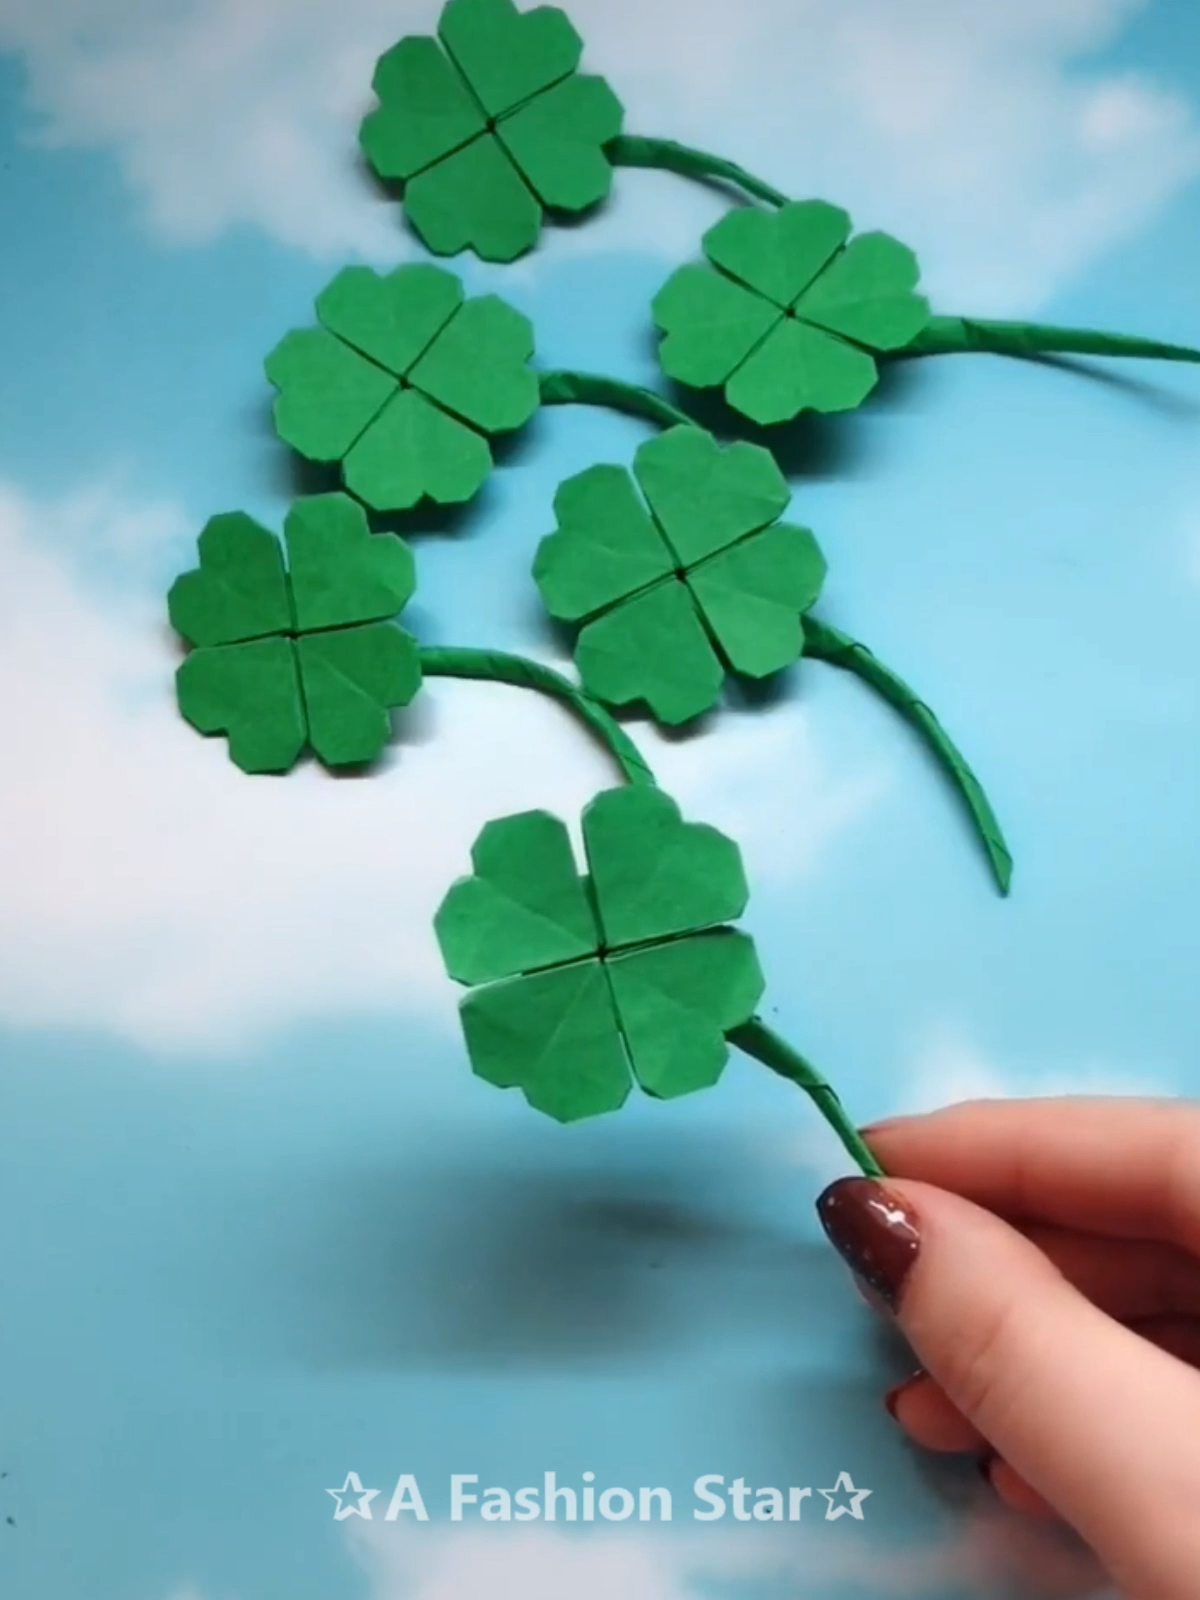 8 Easy Origami Ideas – Fun Paper Crafts -  Clover Idea -  Clover #casa